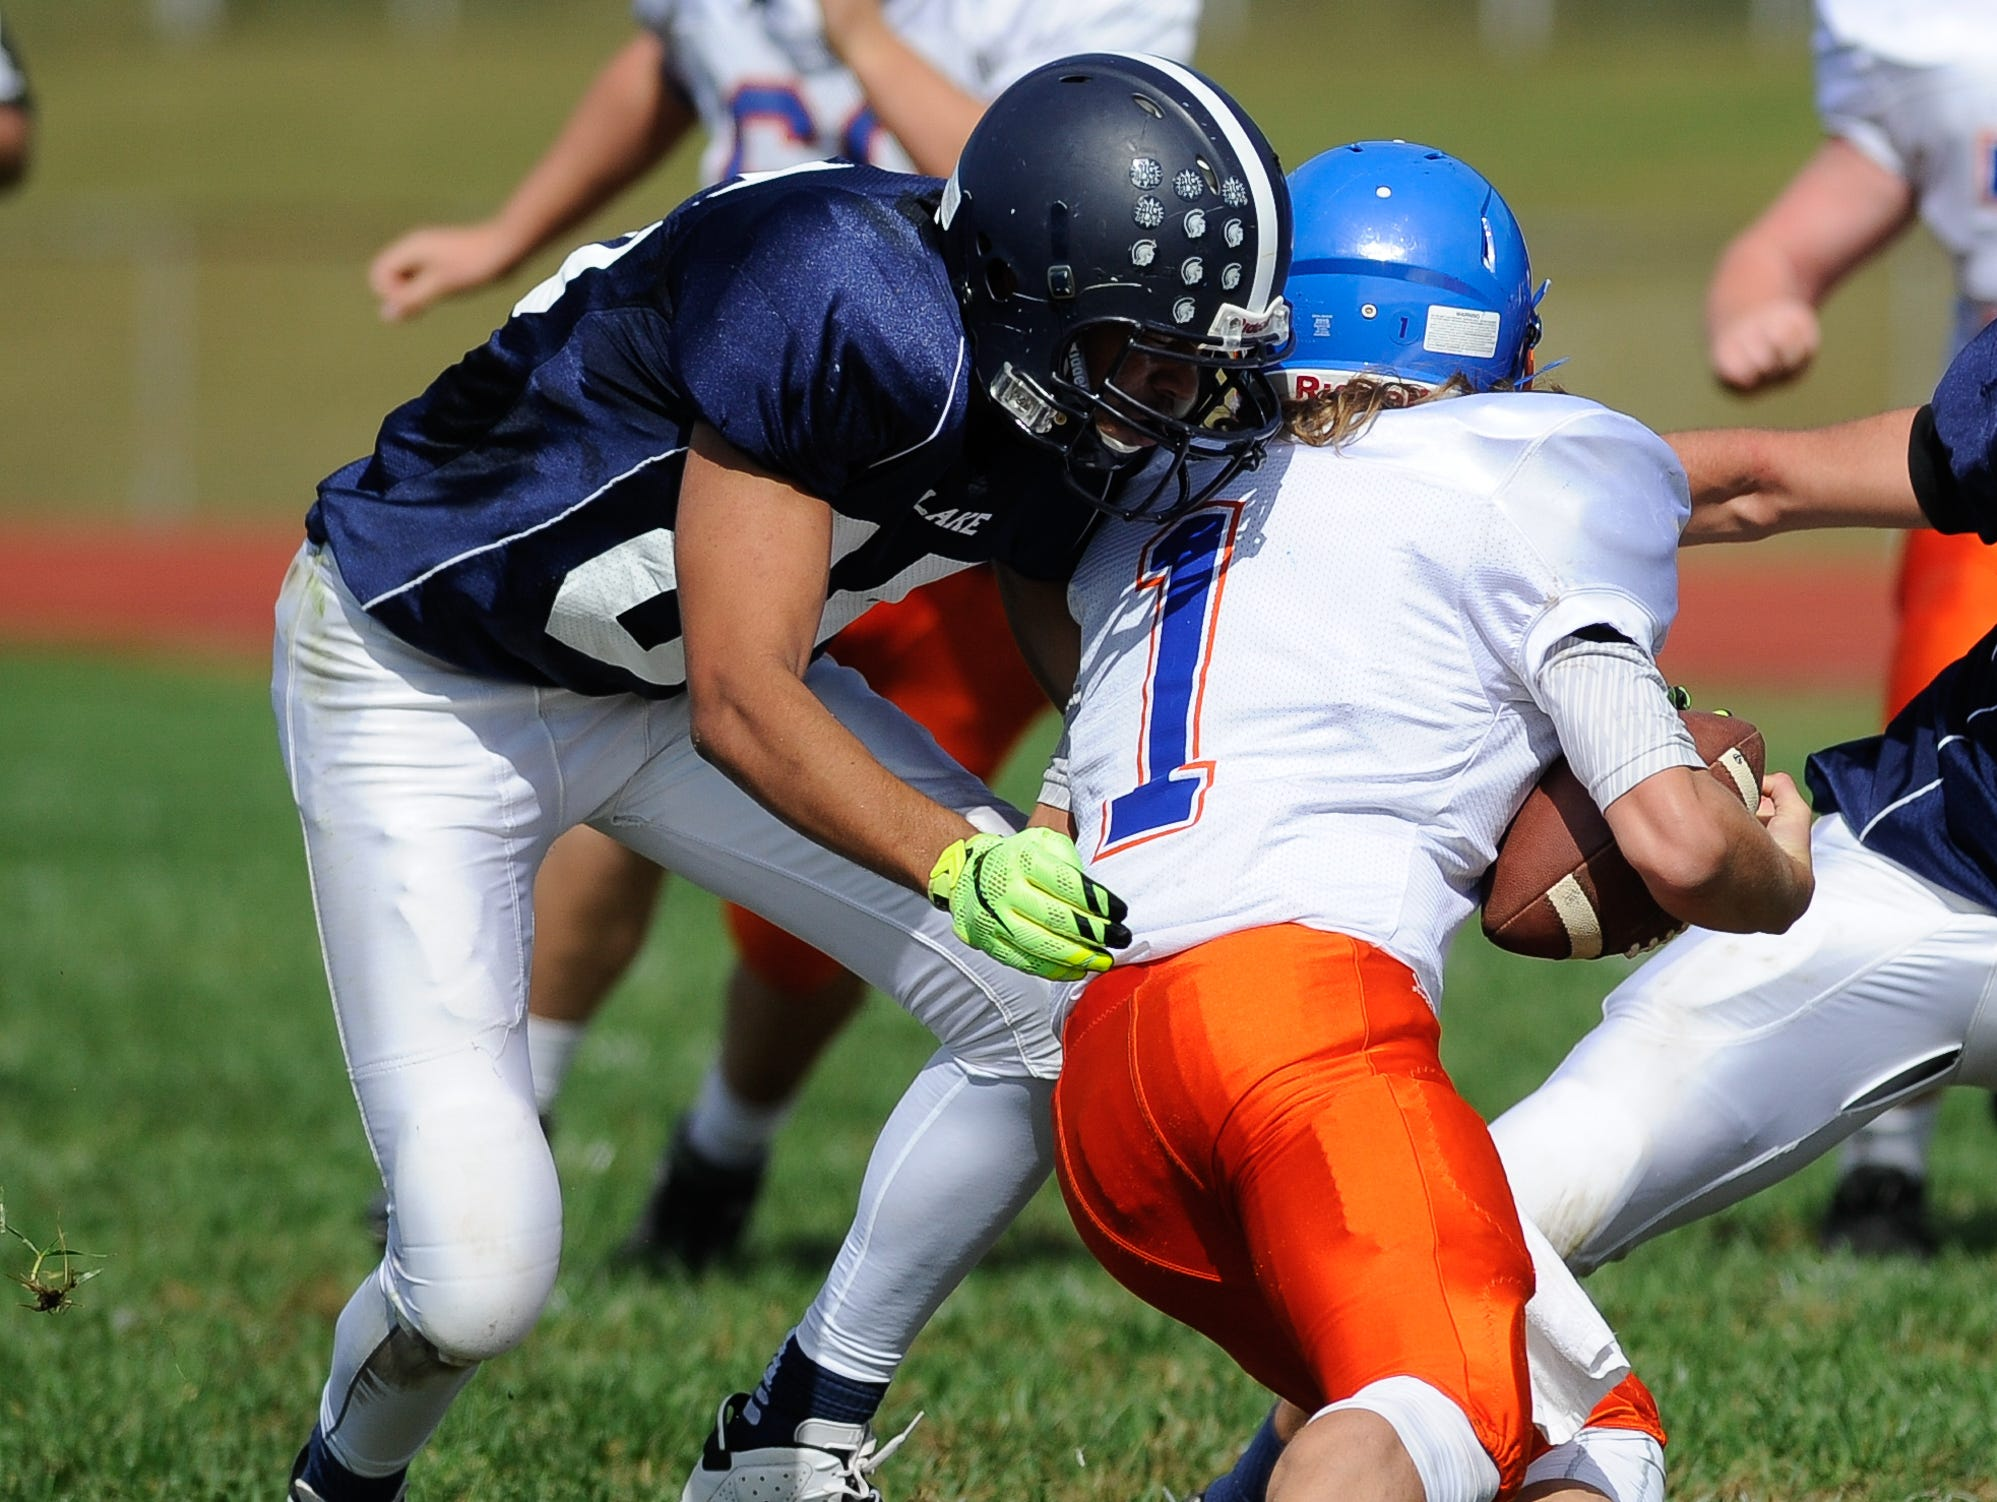 Lake Forest's #85 Cameron Lewis with a tackle on Delmar's quarterback #1 James Adkins on Saturday at Lake Forest High School.